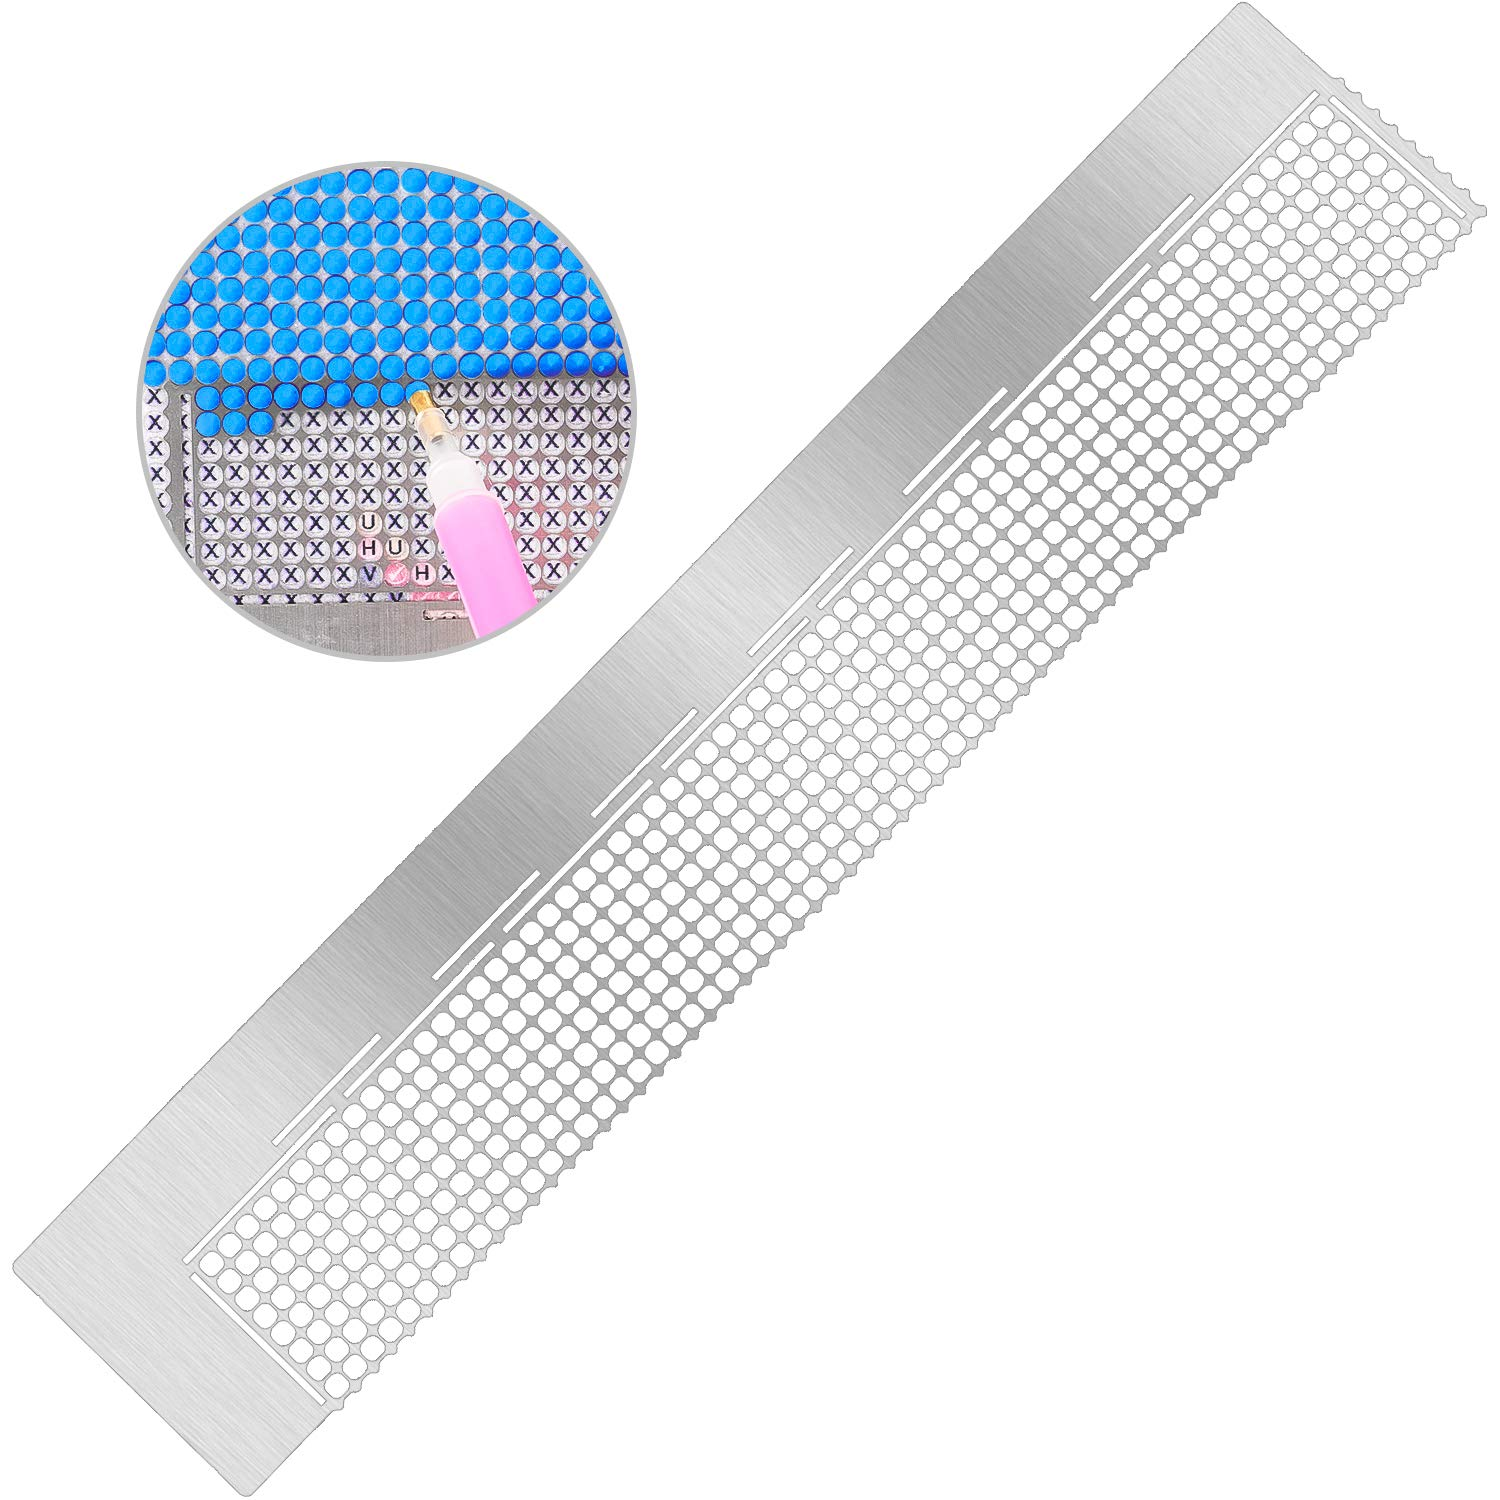 DIY Round Drill Cross-Stitch Tools Stainless Steel CUTICATE 5D Diamond Painting Dot Drill Ruler 216 Holes